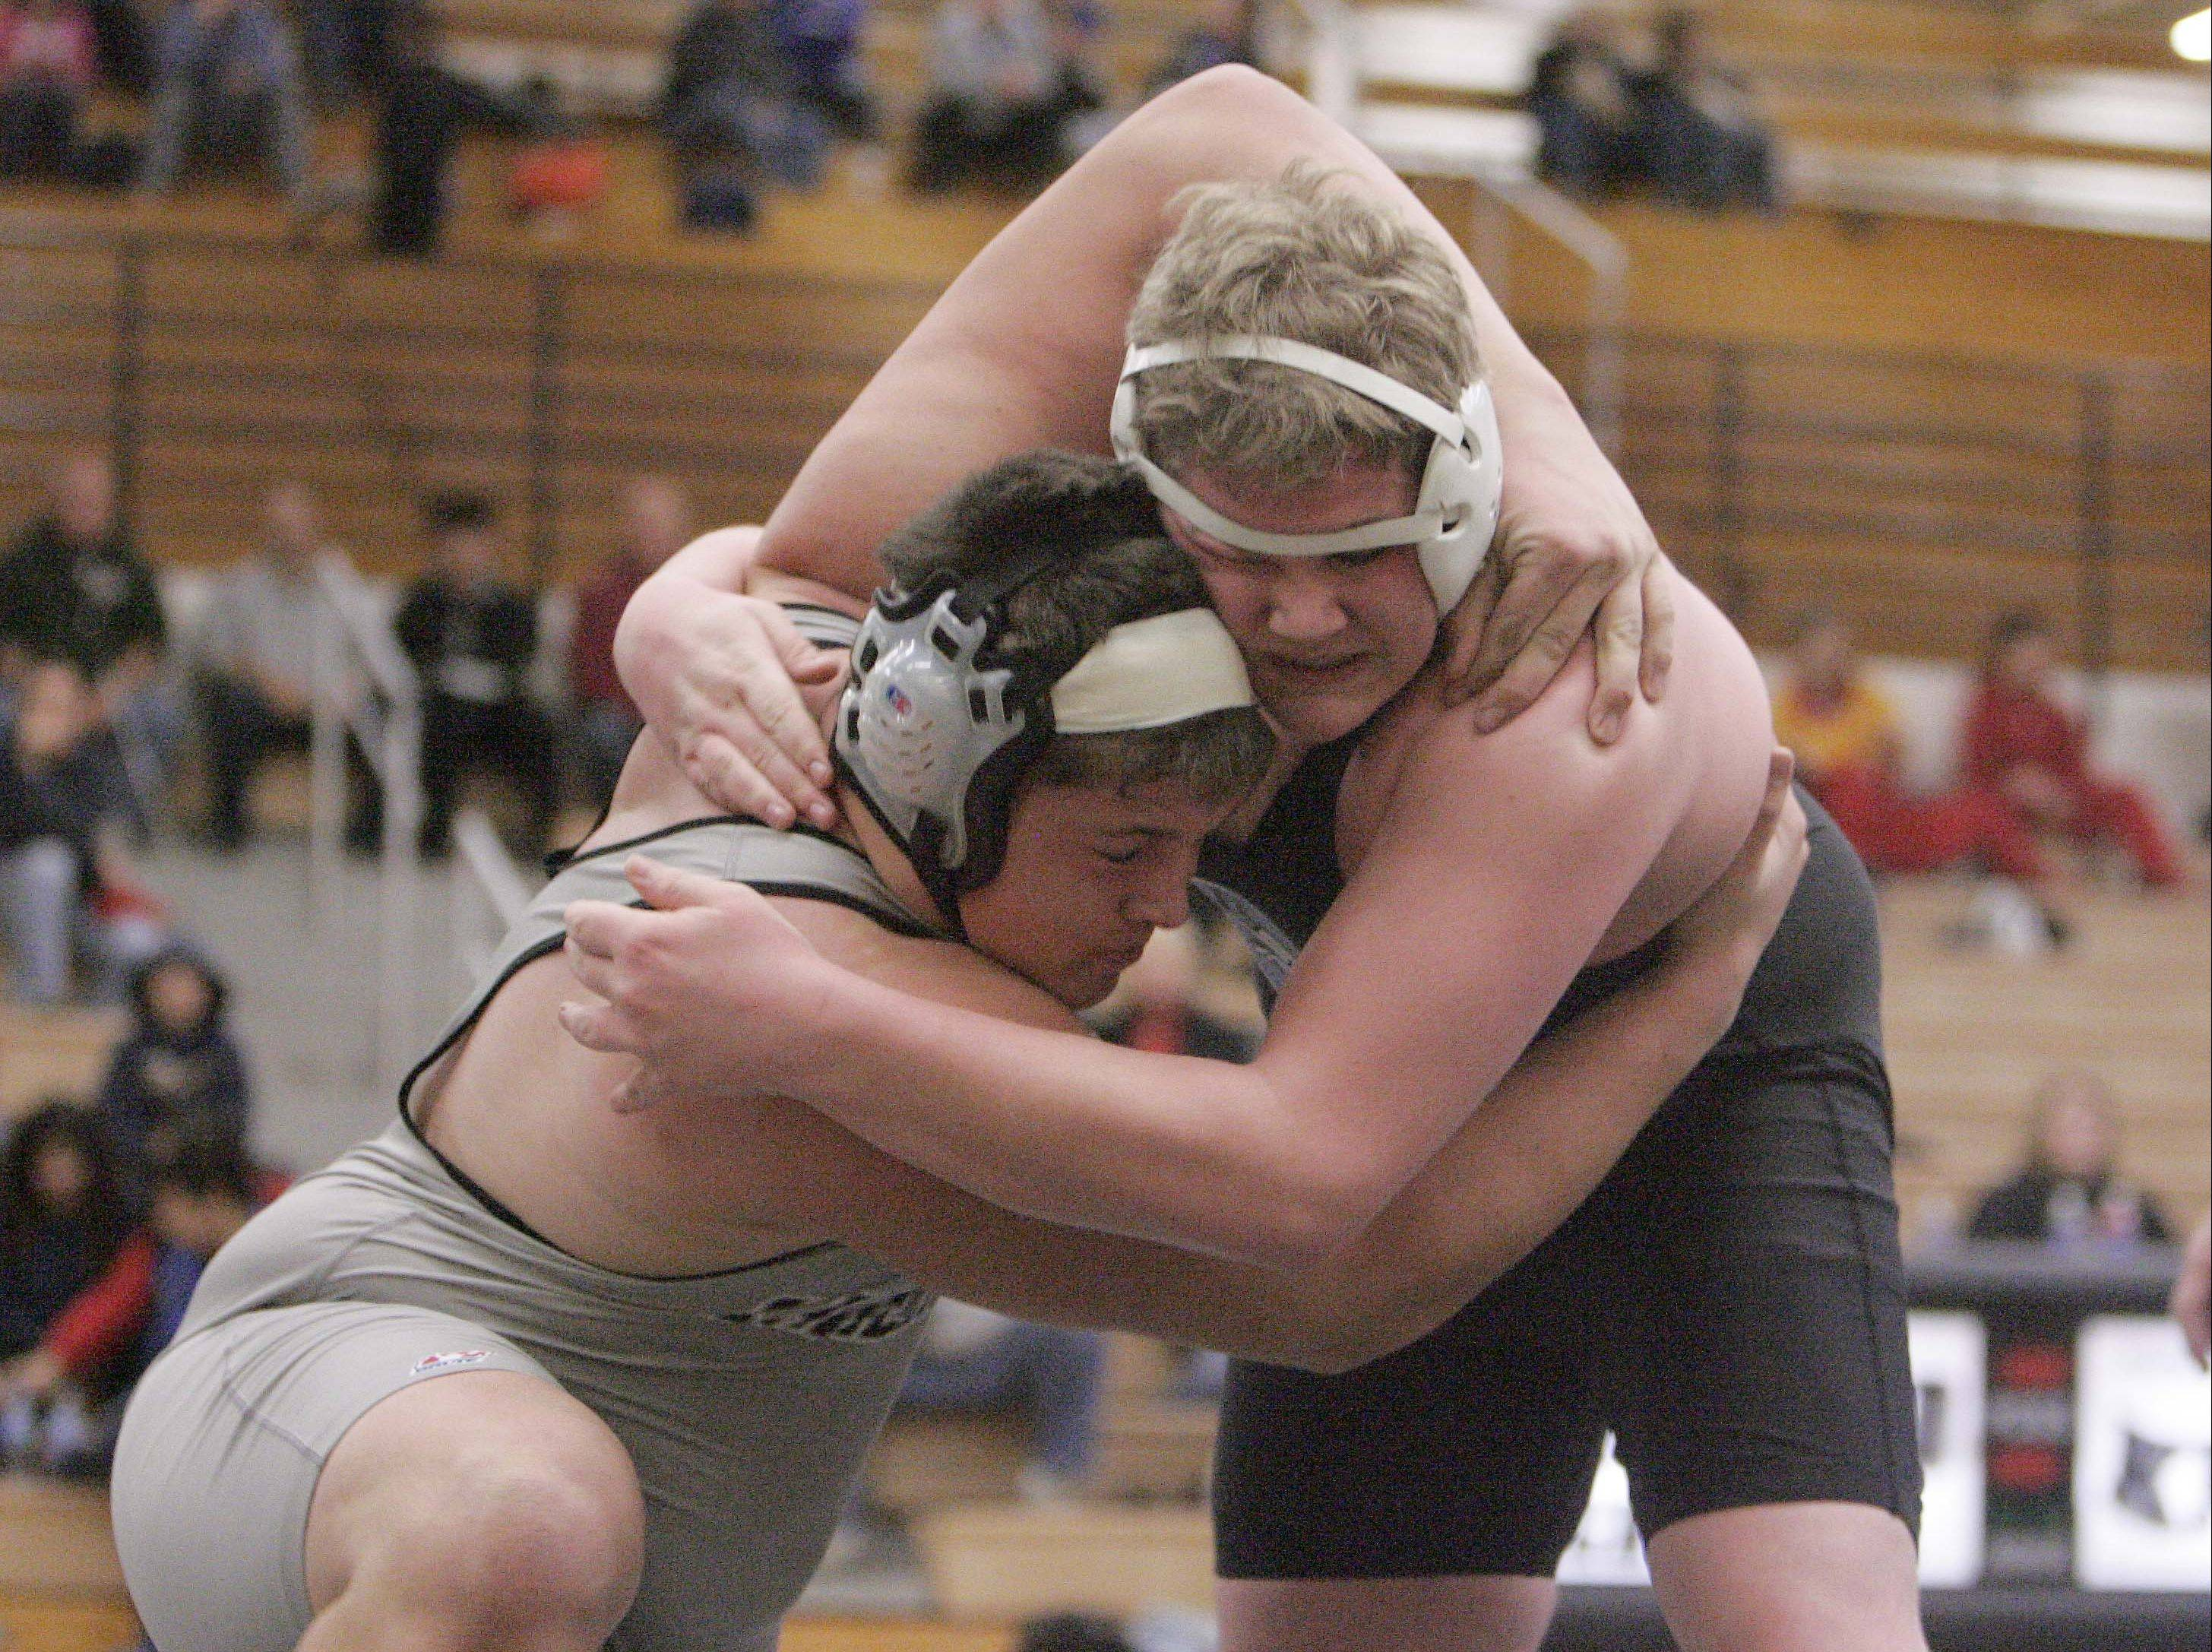 Kaneland's Zach Theis, pictured wrestling Geneva's Jake Anderson, is headed to state with two teammates after just missing last year.